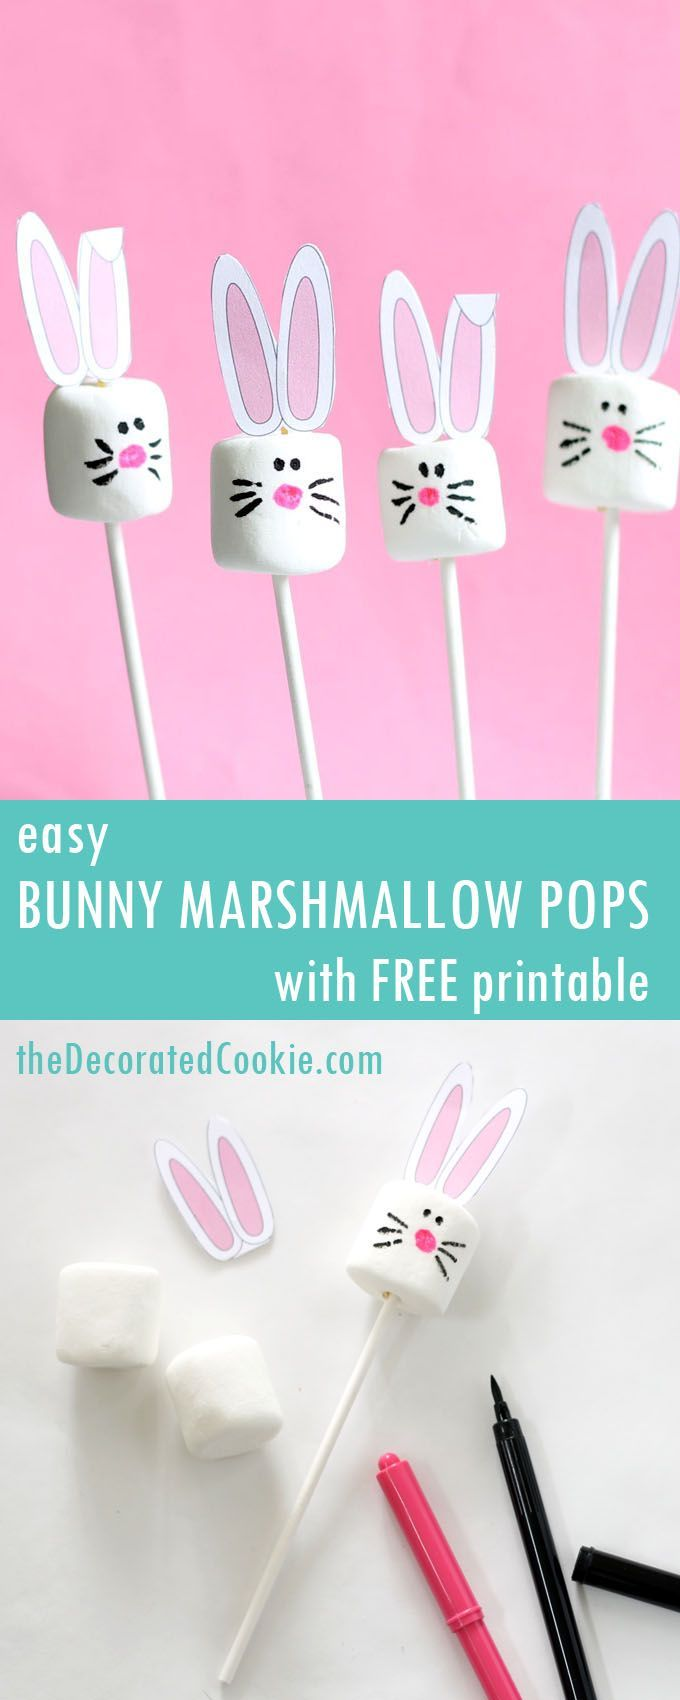 Easy Easter bunny marshmallows with free printable bunny ears. #marshmallows